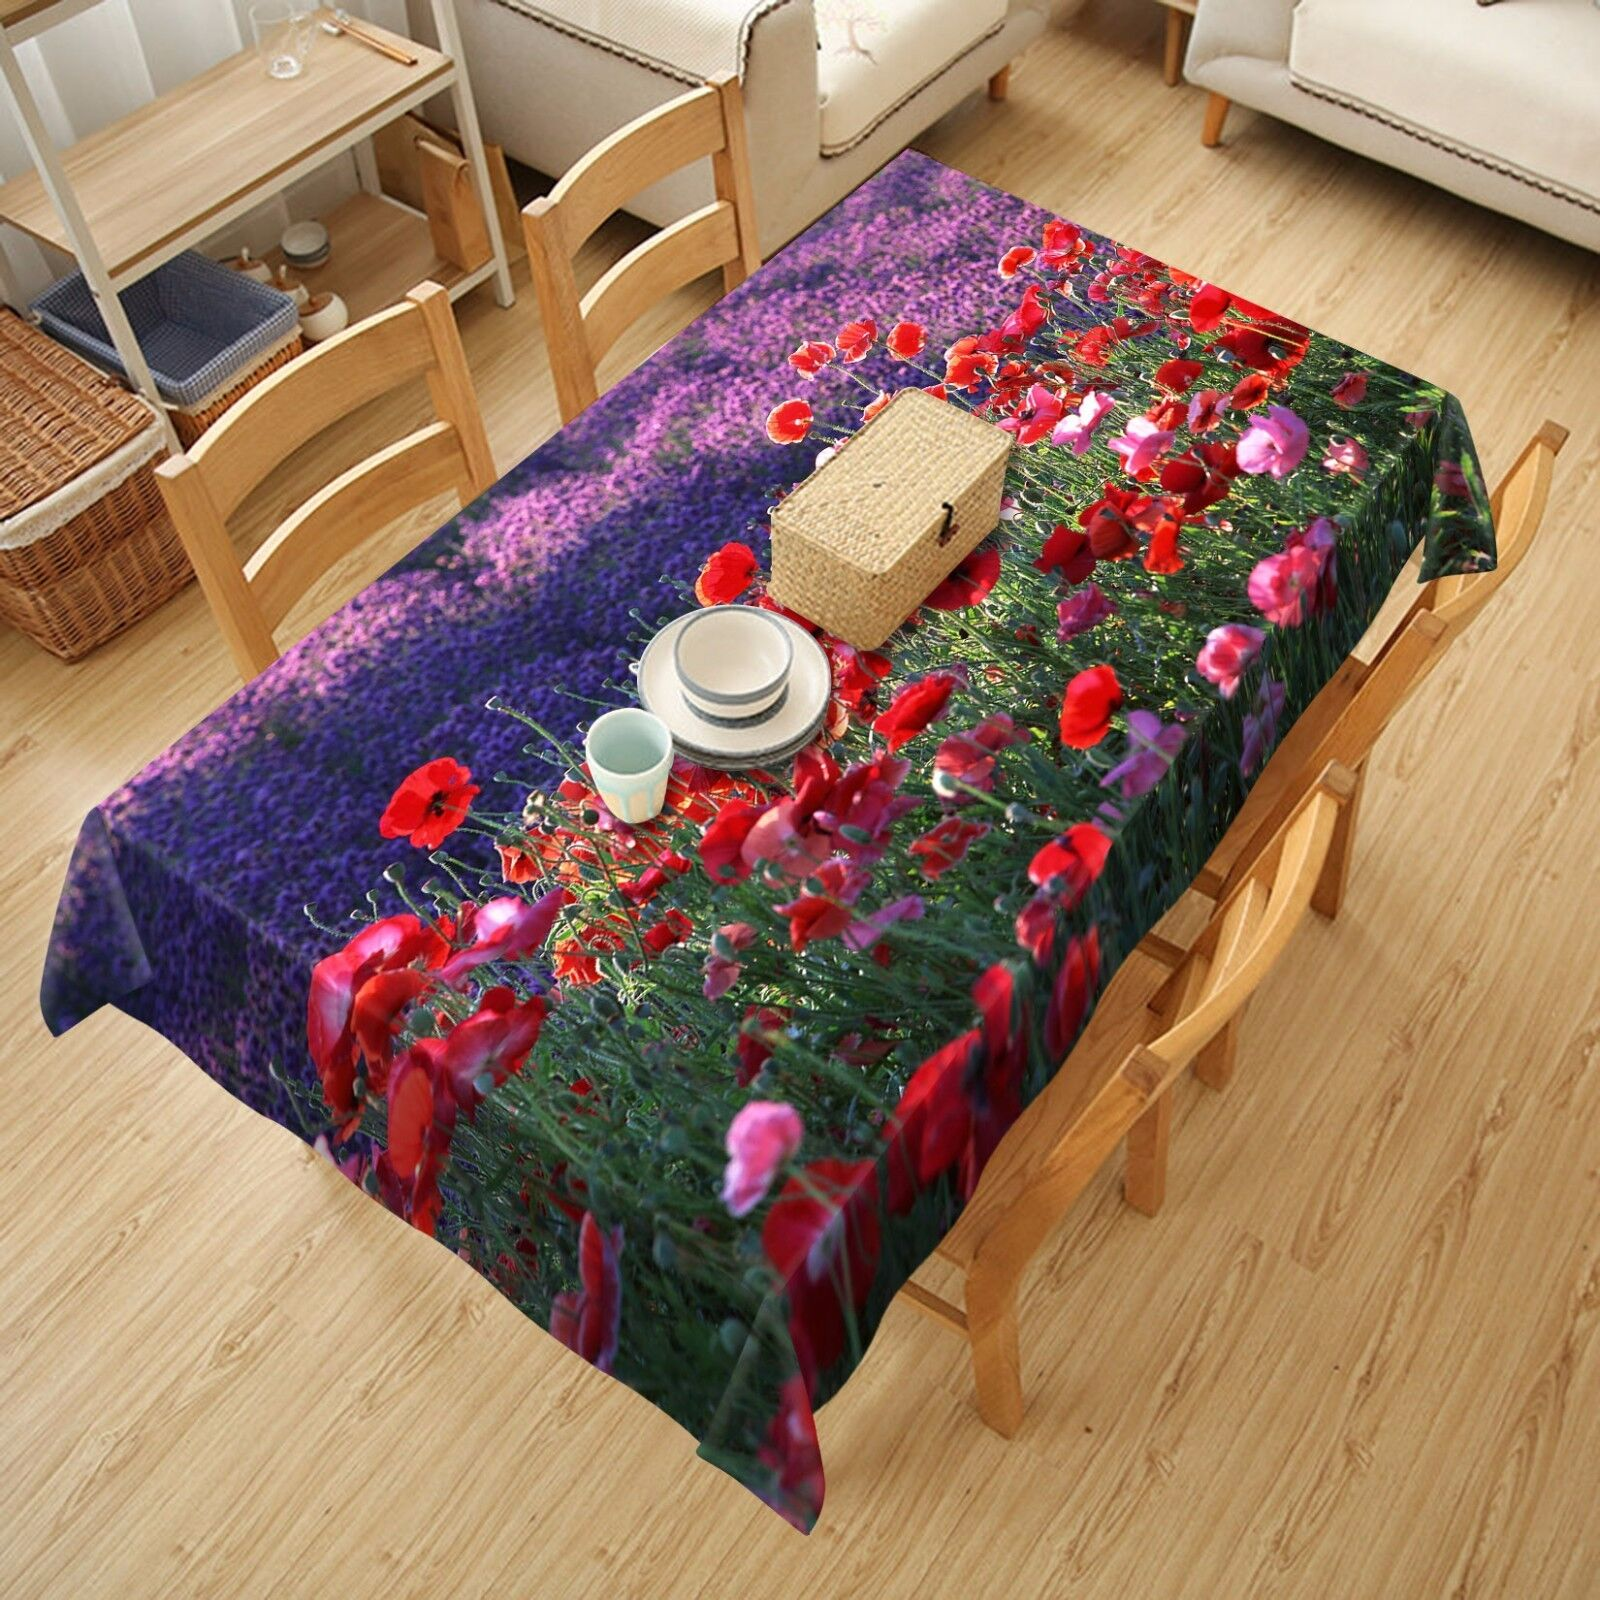 3D Field rot79 Tablecloth Table Cover Cloth Birthday Party Event AJ WALLPAPER UK